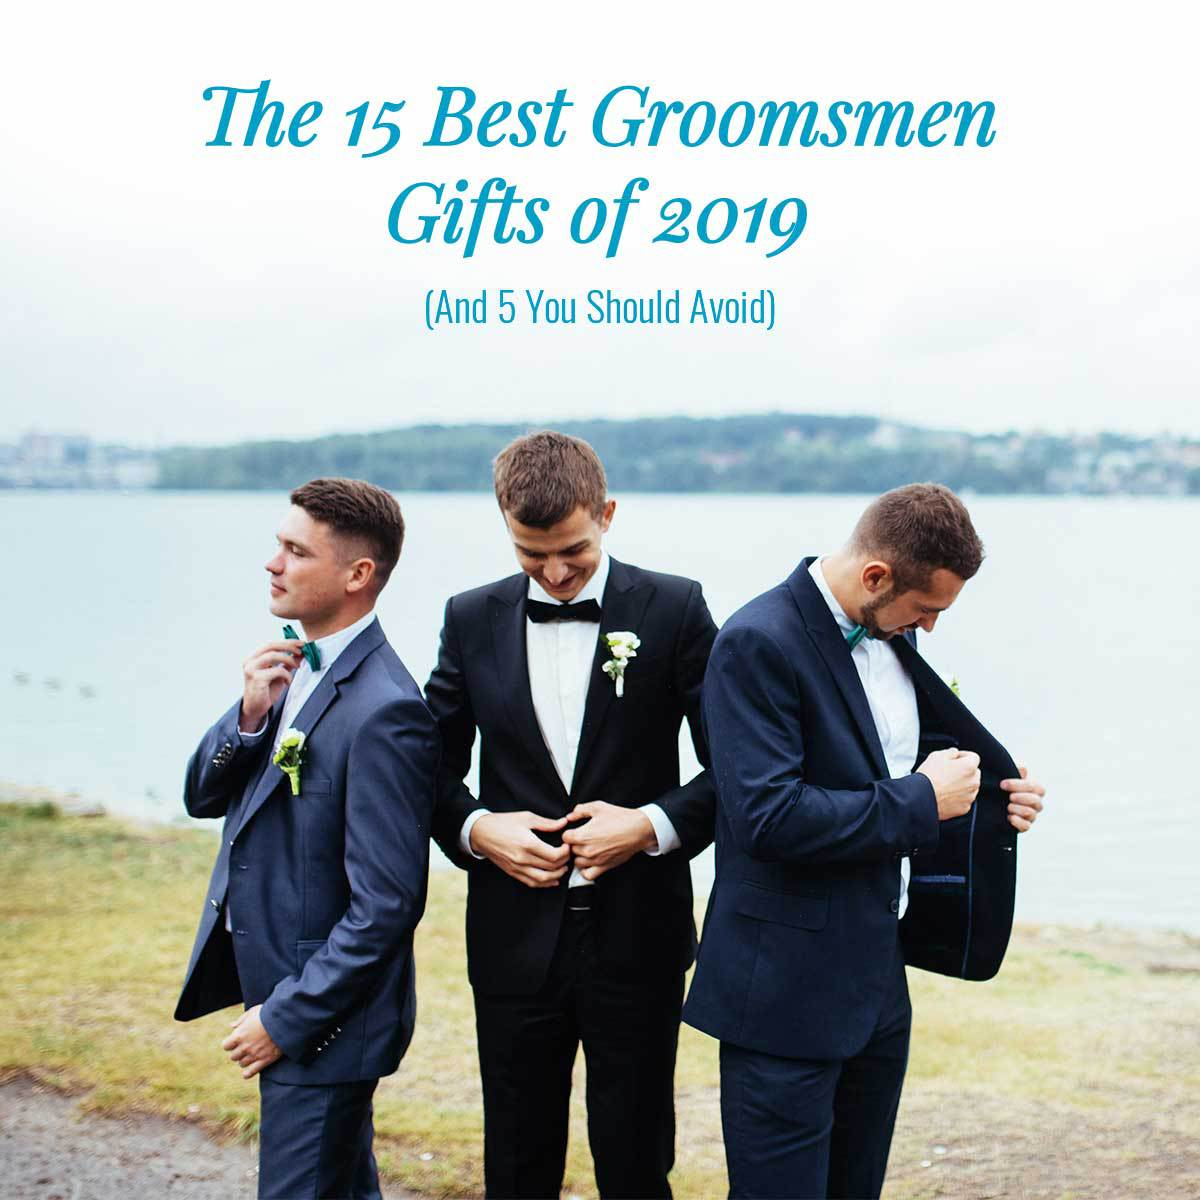 Groomsmen in suits gathering to enjoy some of the best groomsmen gifts of 2019